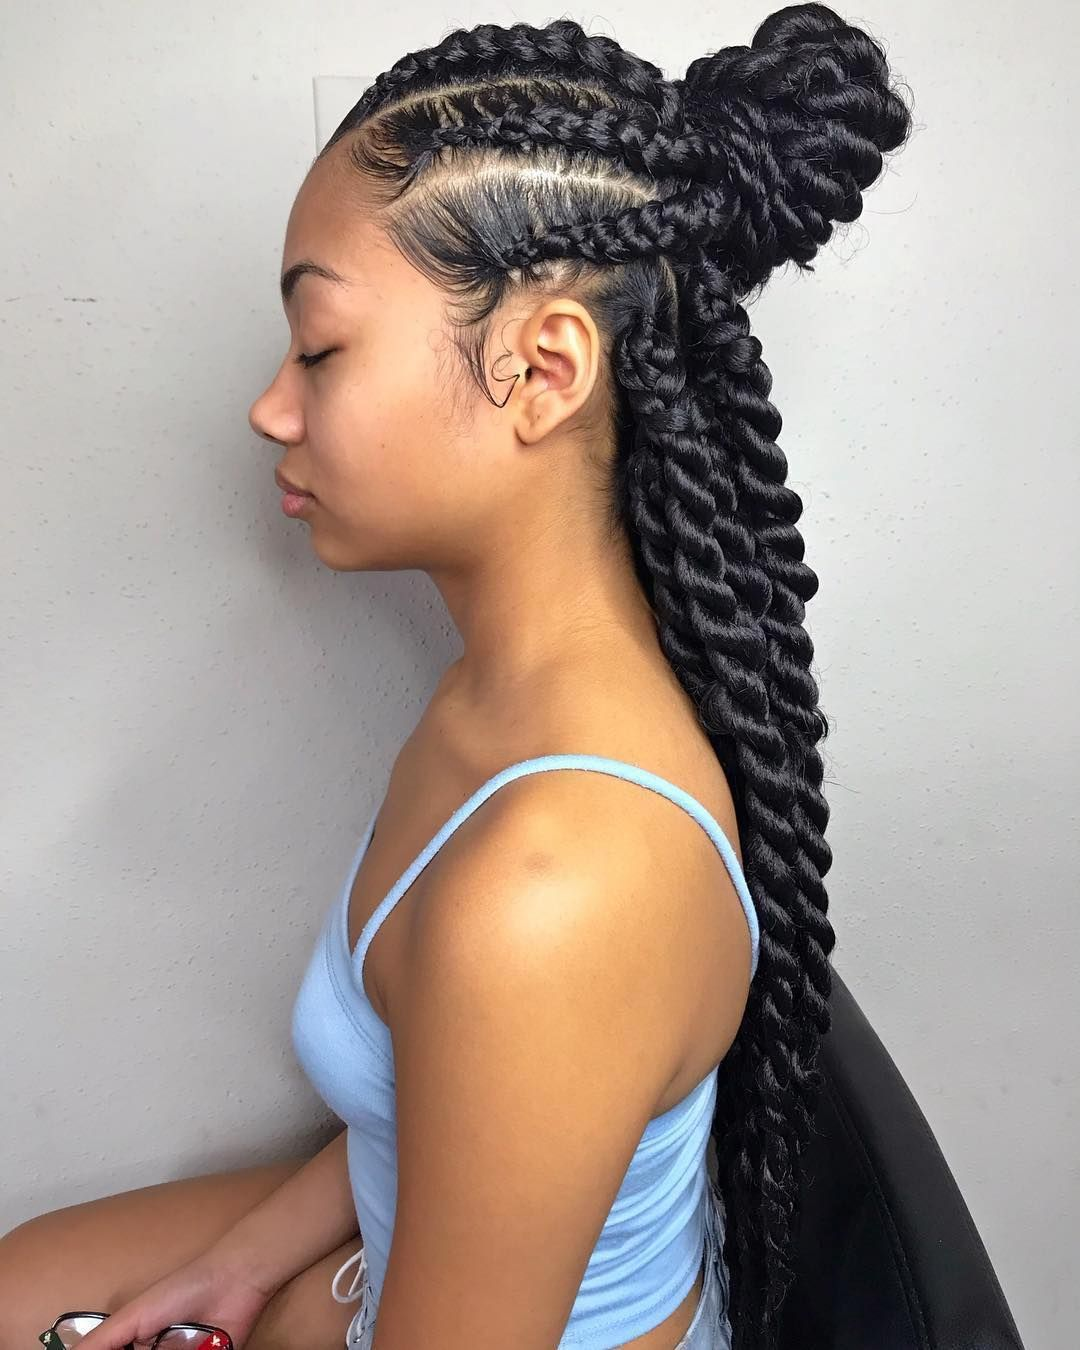 Protectivestyles On Instagram Trapprinzess Half Up Half Down